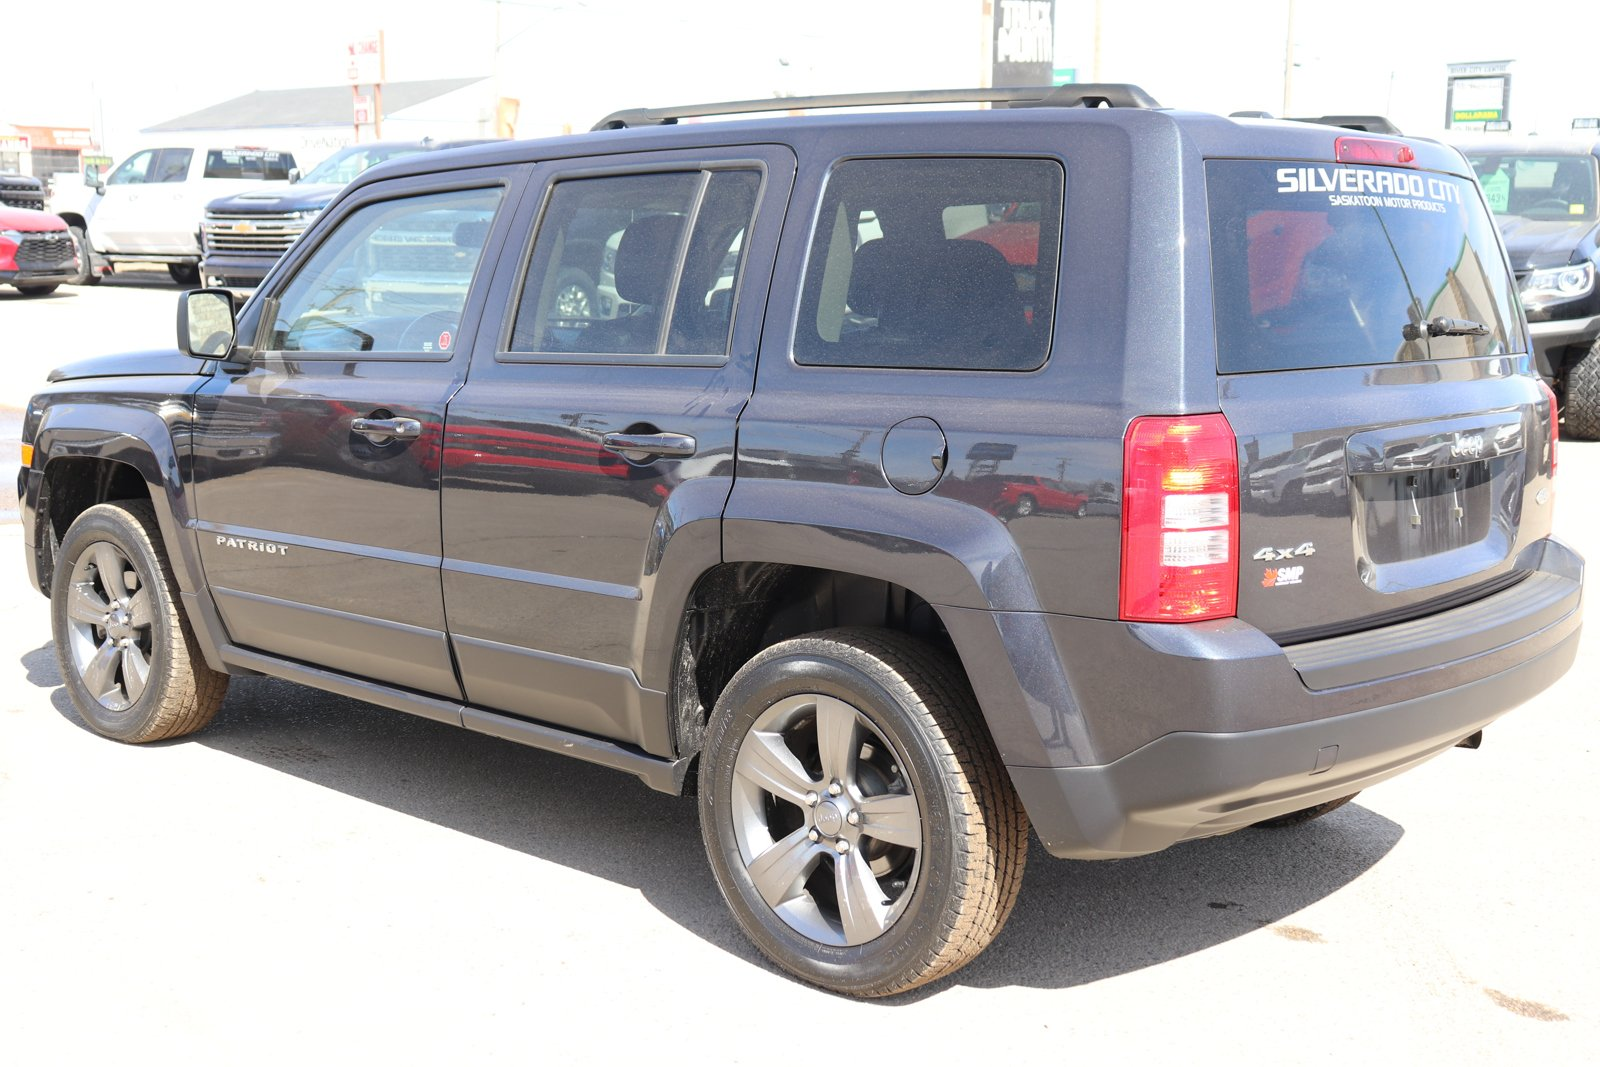 Certified Pre-Owned 2015 Jeep Patriot High Altitude -Remote Start, Leather, Sunroof, Navigation